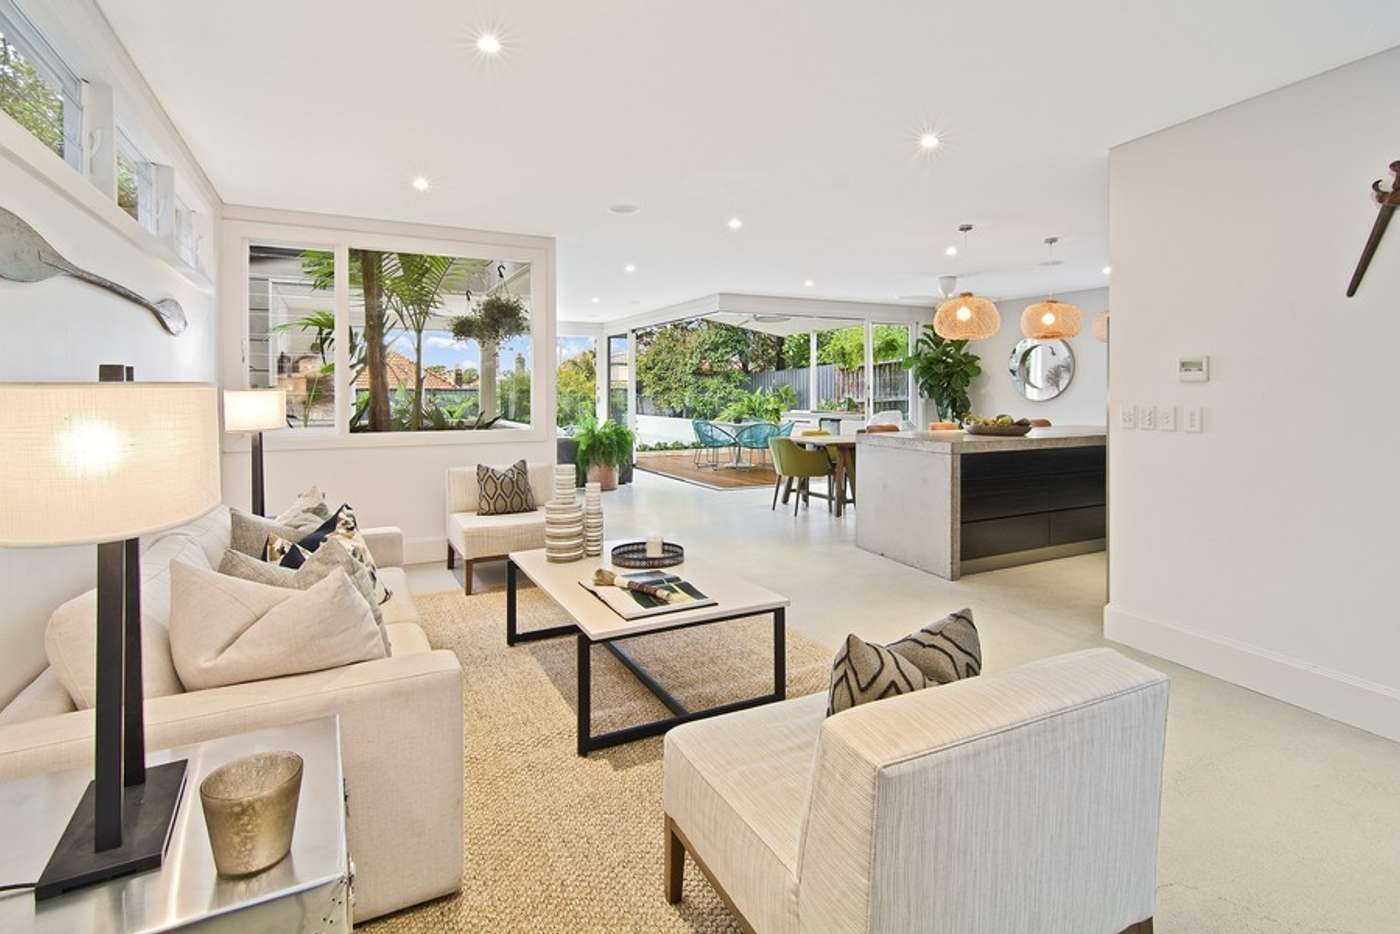 Fifth view of Homely house listing, 15 Cairo Street, Cammeray NSW 2062